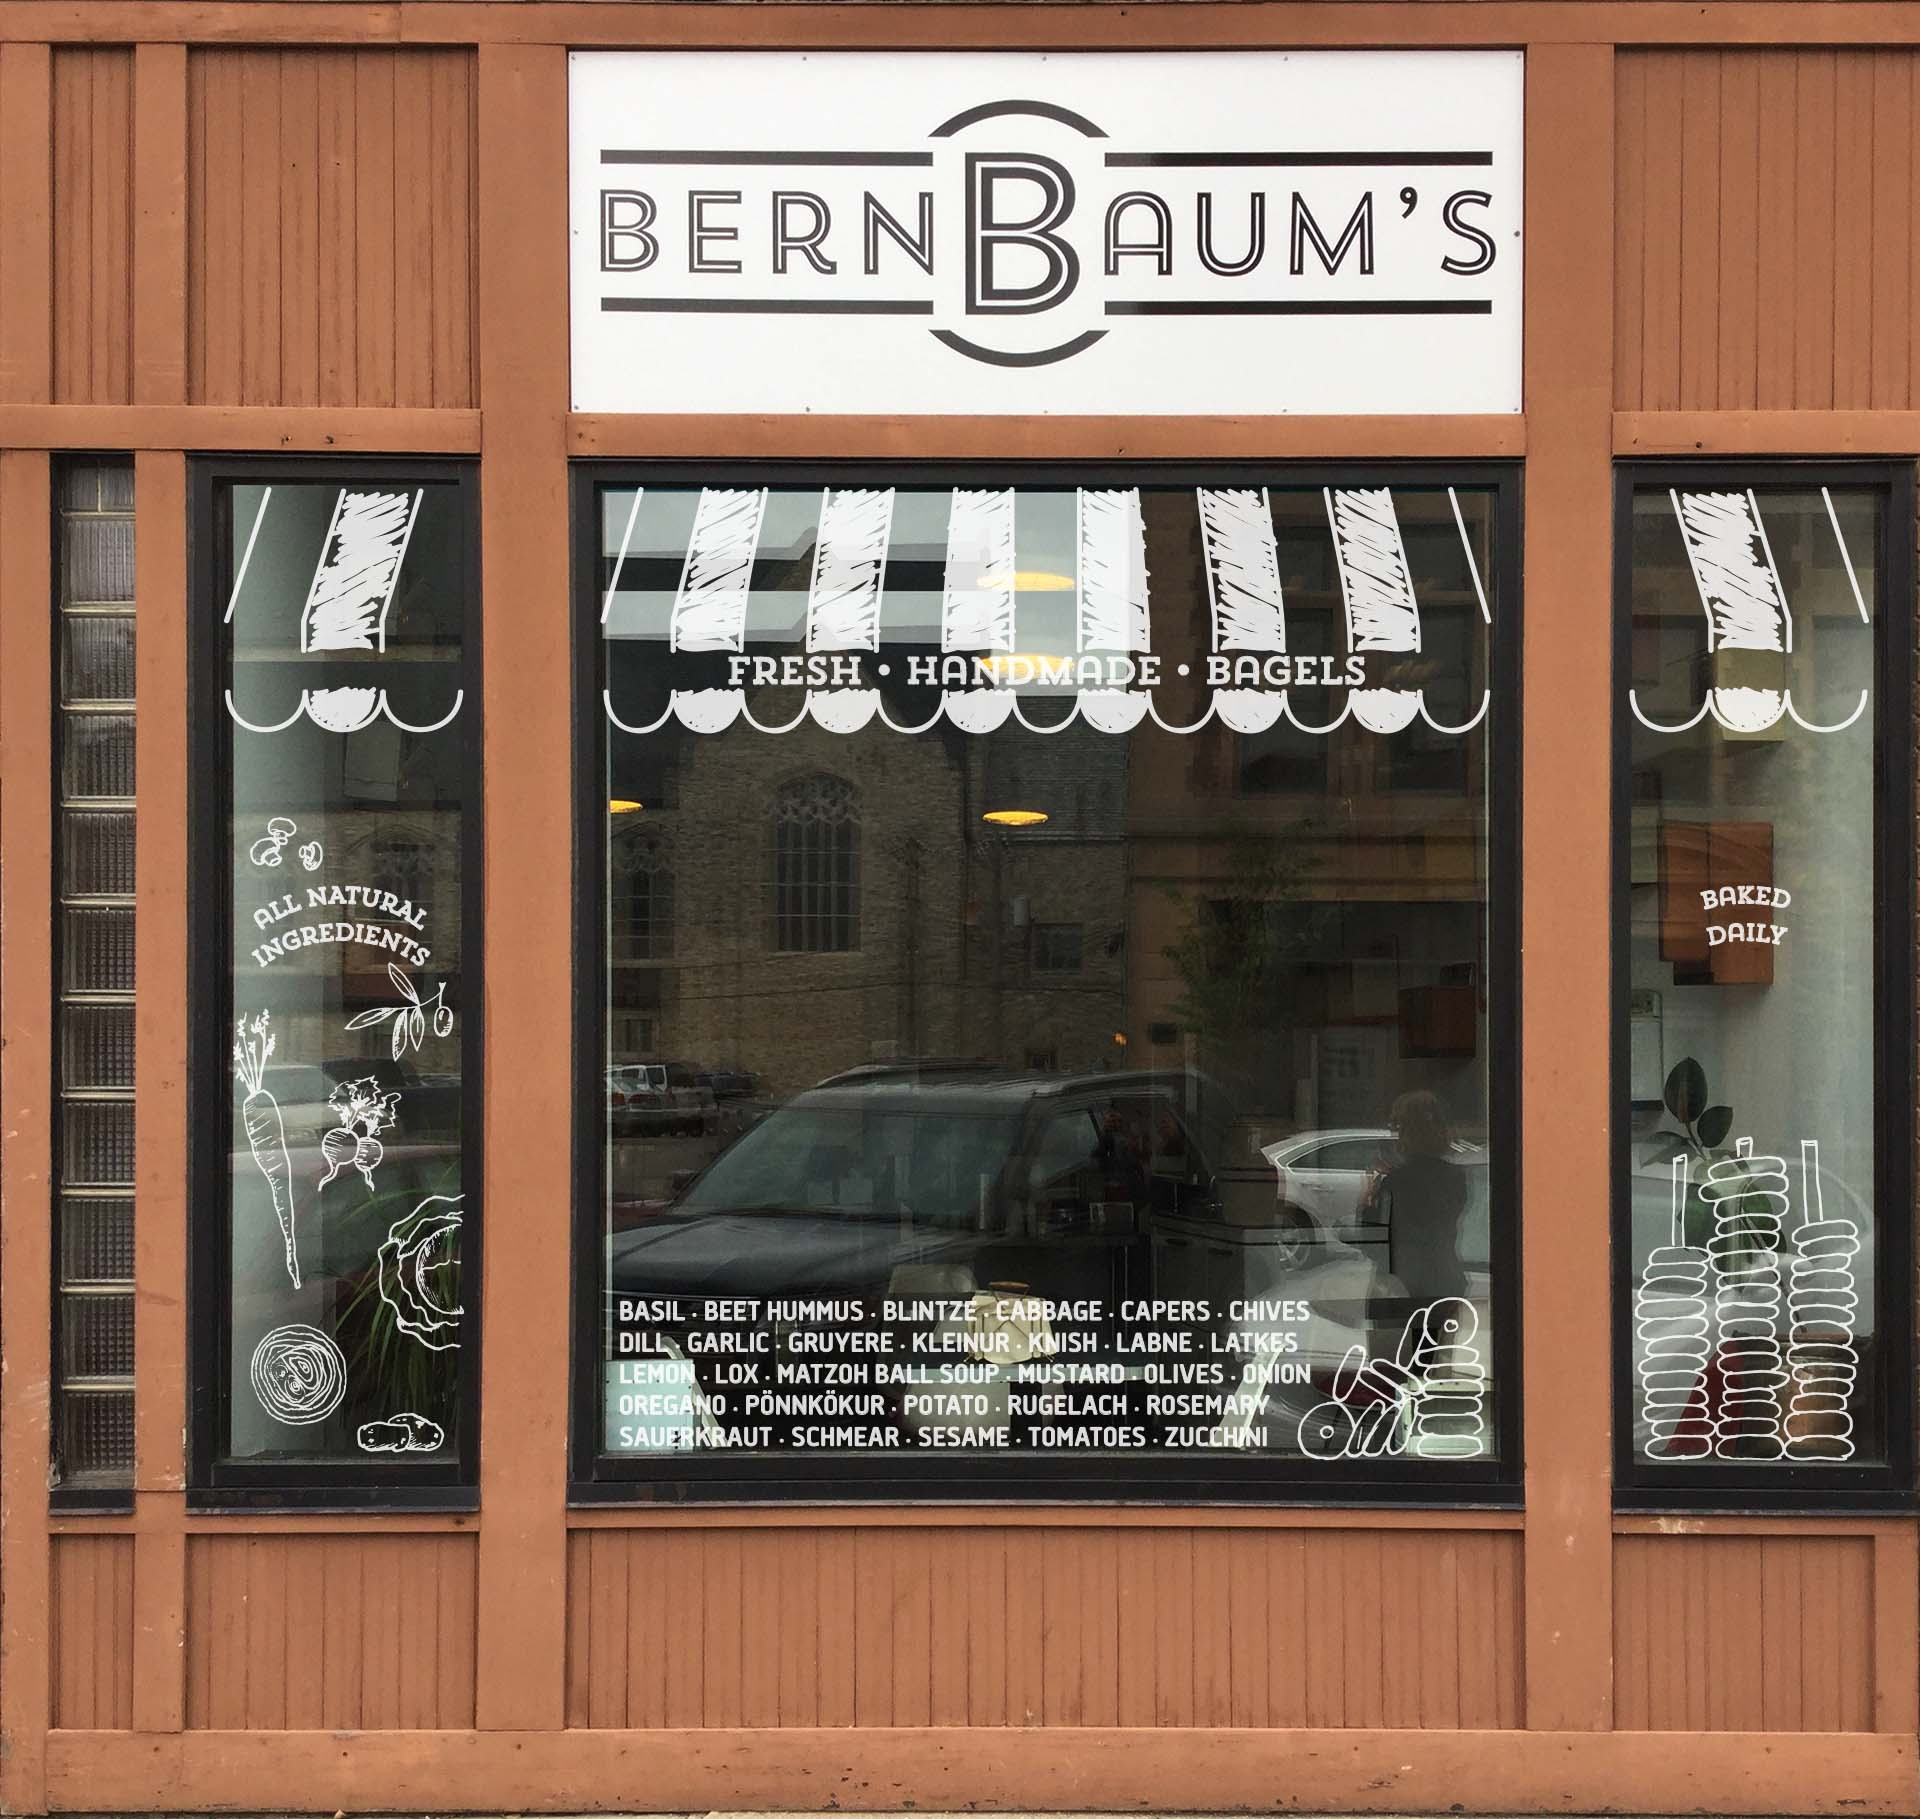 Concept for windows with hand-drawn white awning, listing of ingredients, and illustrations of ingredients and bagels